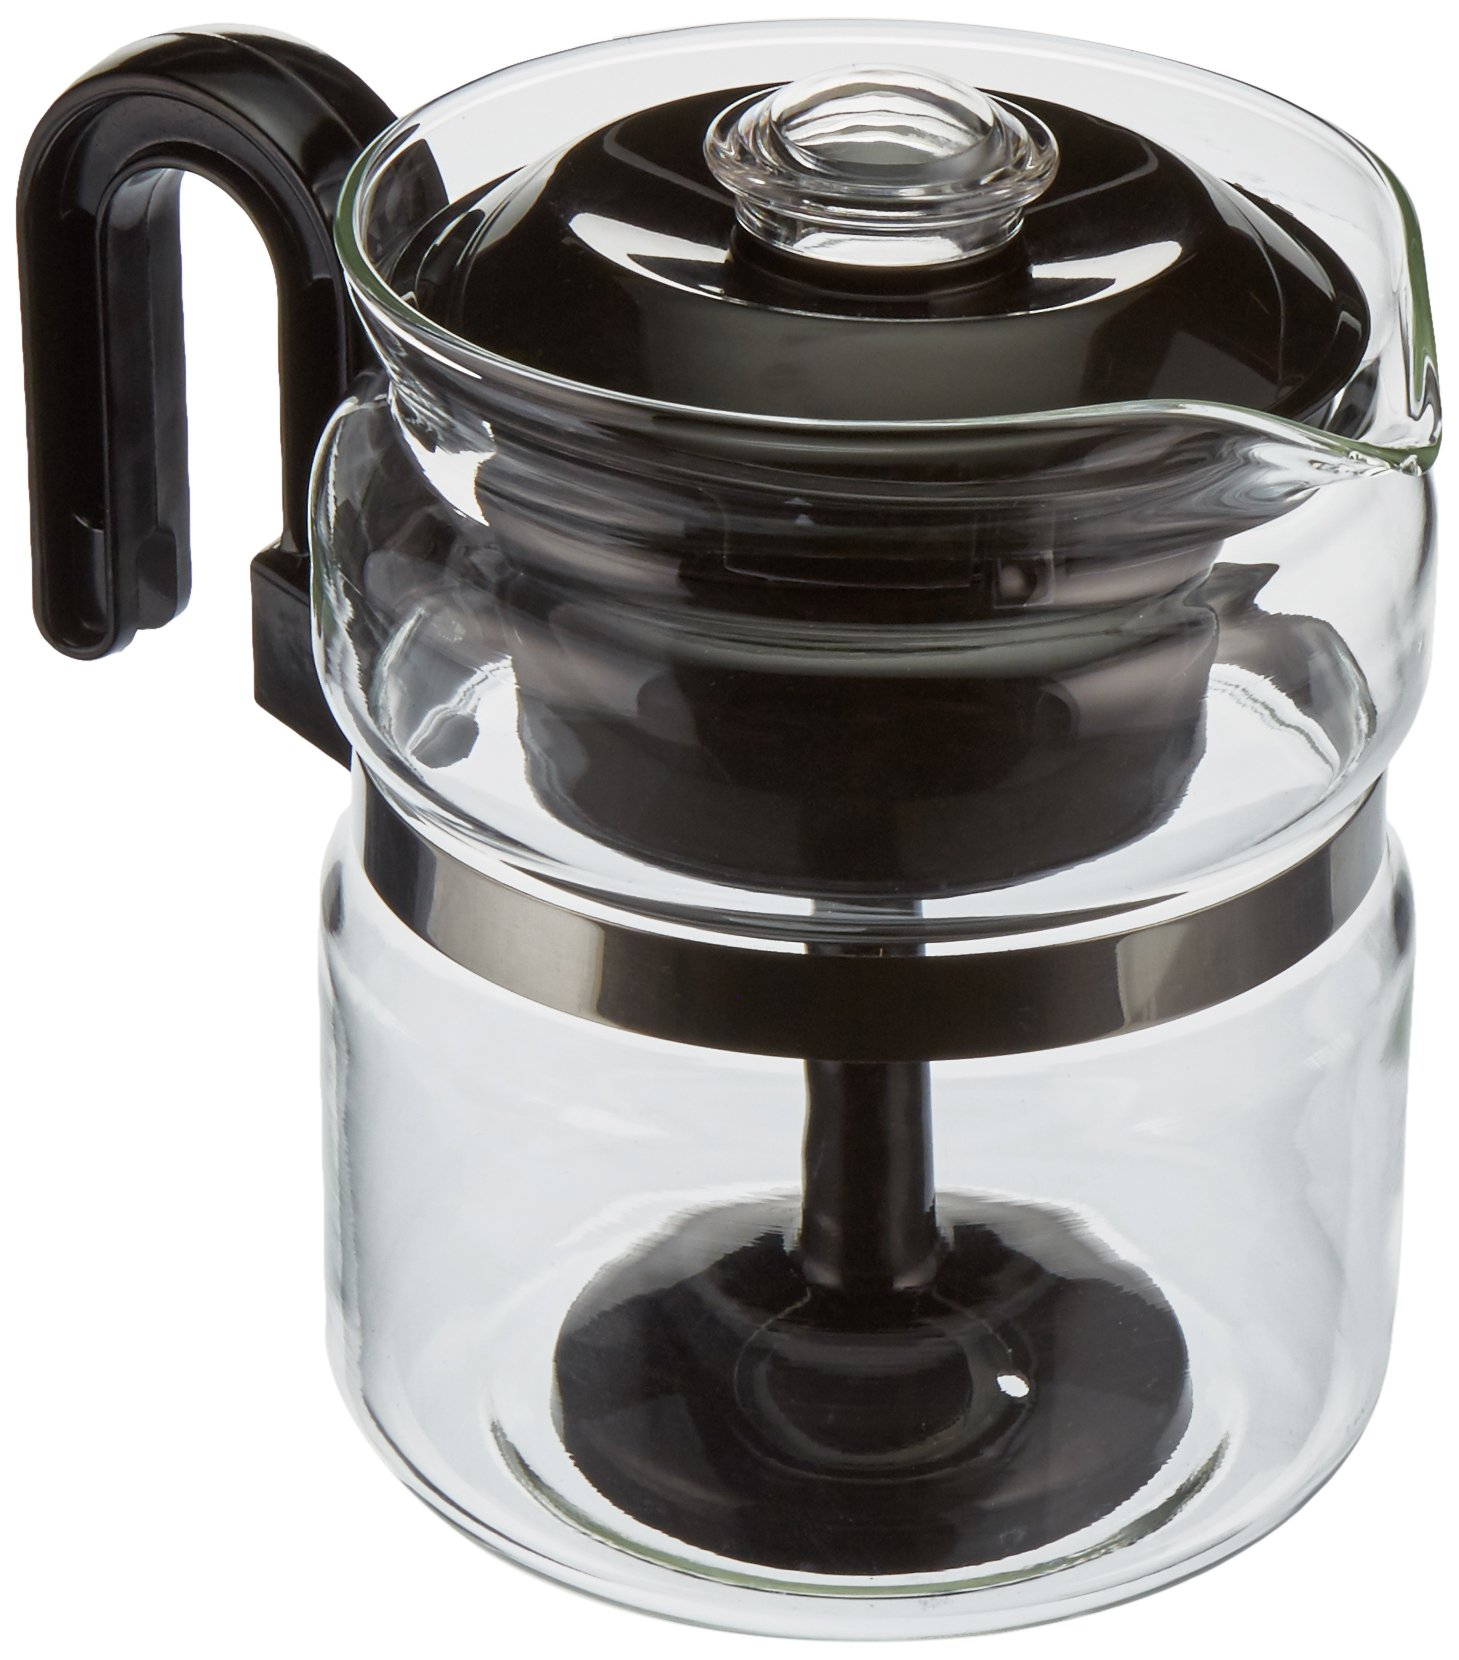 Euro-Ware Perco Mate 8 Cup Glass Coffee/Hot Beverage Percolator with Metal Trivet, Clear